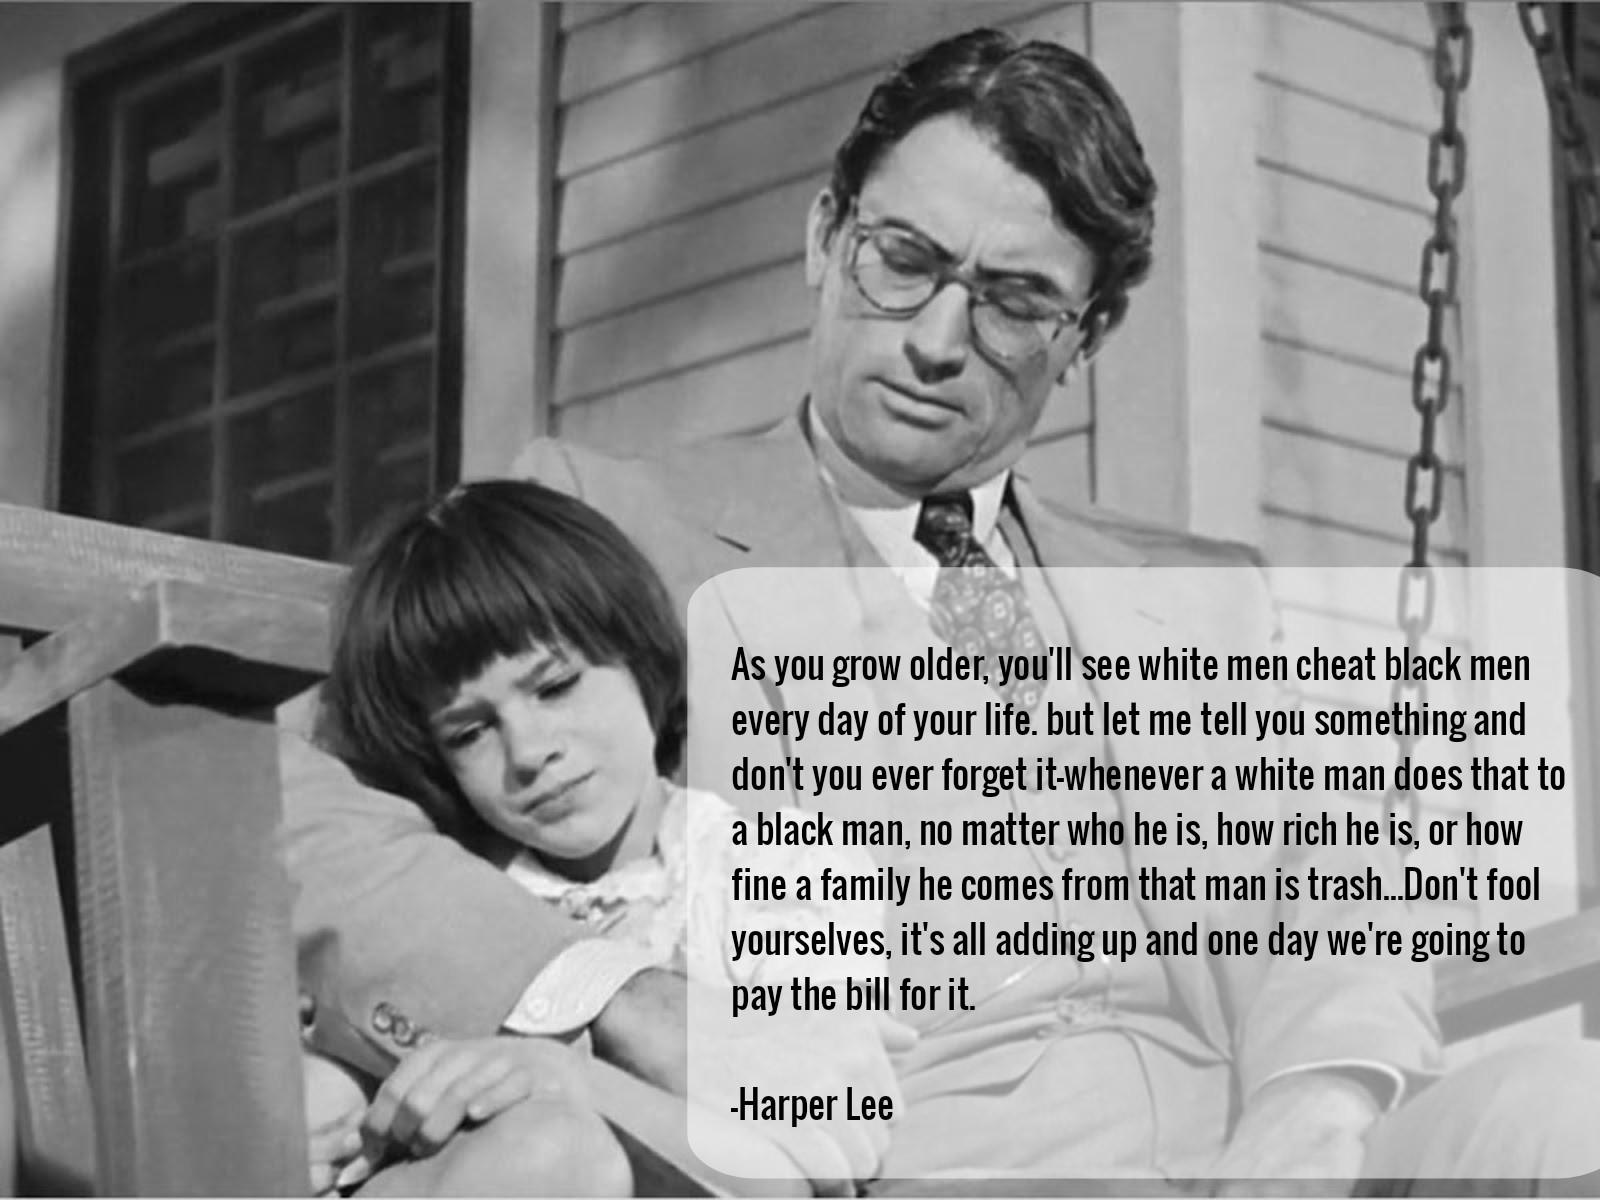 'As you grow older, you'll see white men cheat black men every day of your life. but let me tell you something and don't you ever forget it – whenever a white man does that to a black man, no matter who he is, how rich he is…. Atticus Finch, To Kill A Mockingbird. Harper Lee [1200 x 1600]